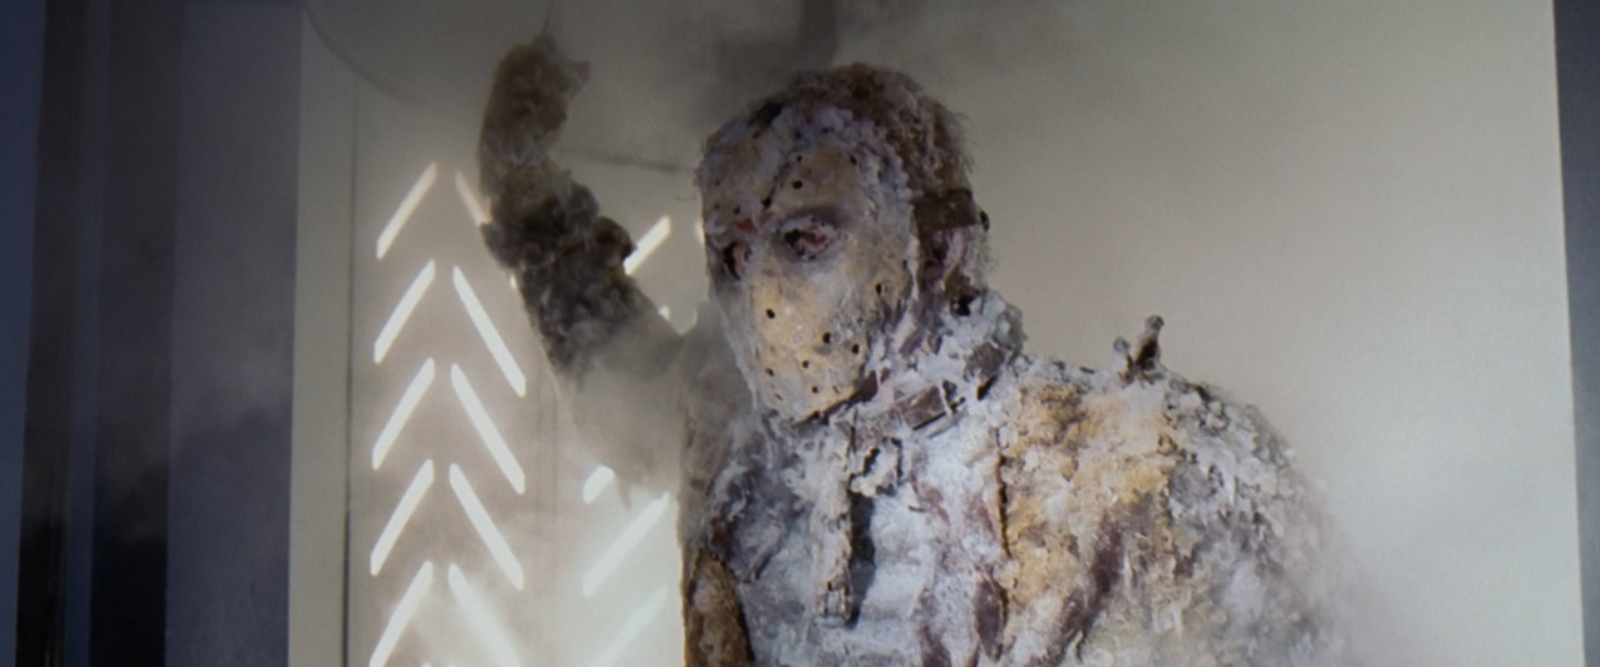 Serial killer Jason Vorhees wearing a hockey mask, being thawed from a cryogenic freezer